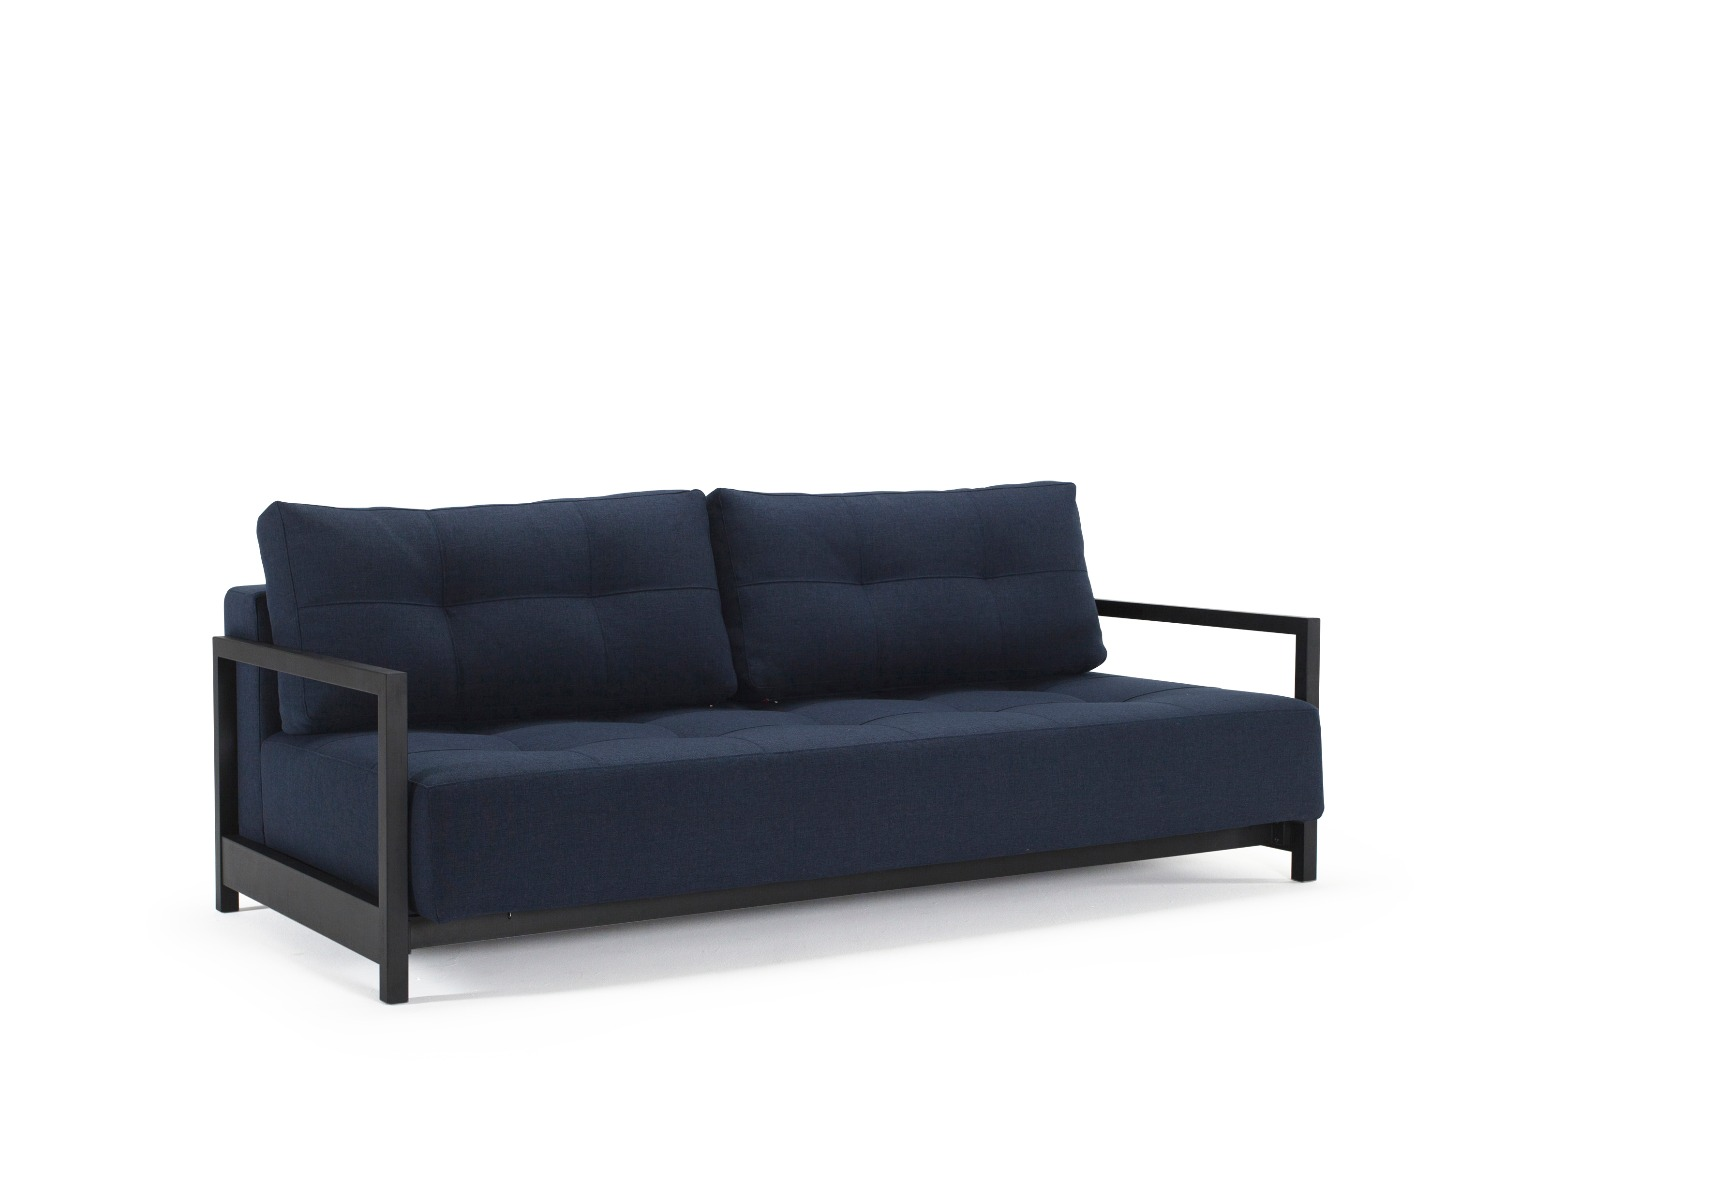 Image of Bifrost Lounger - Mixed Dance Blue (8095)